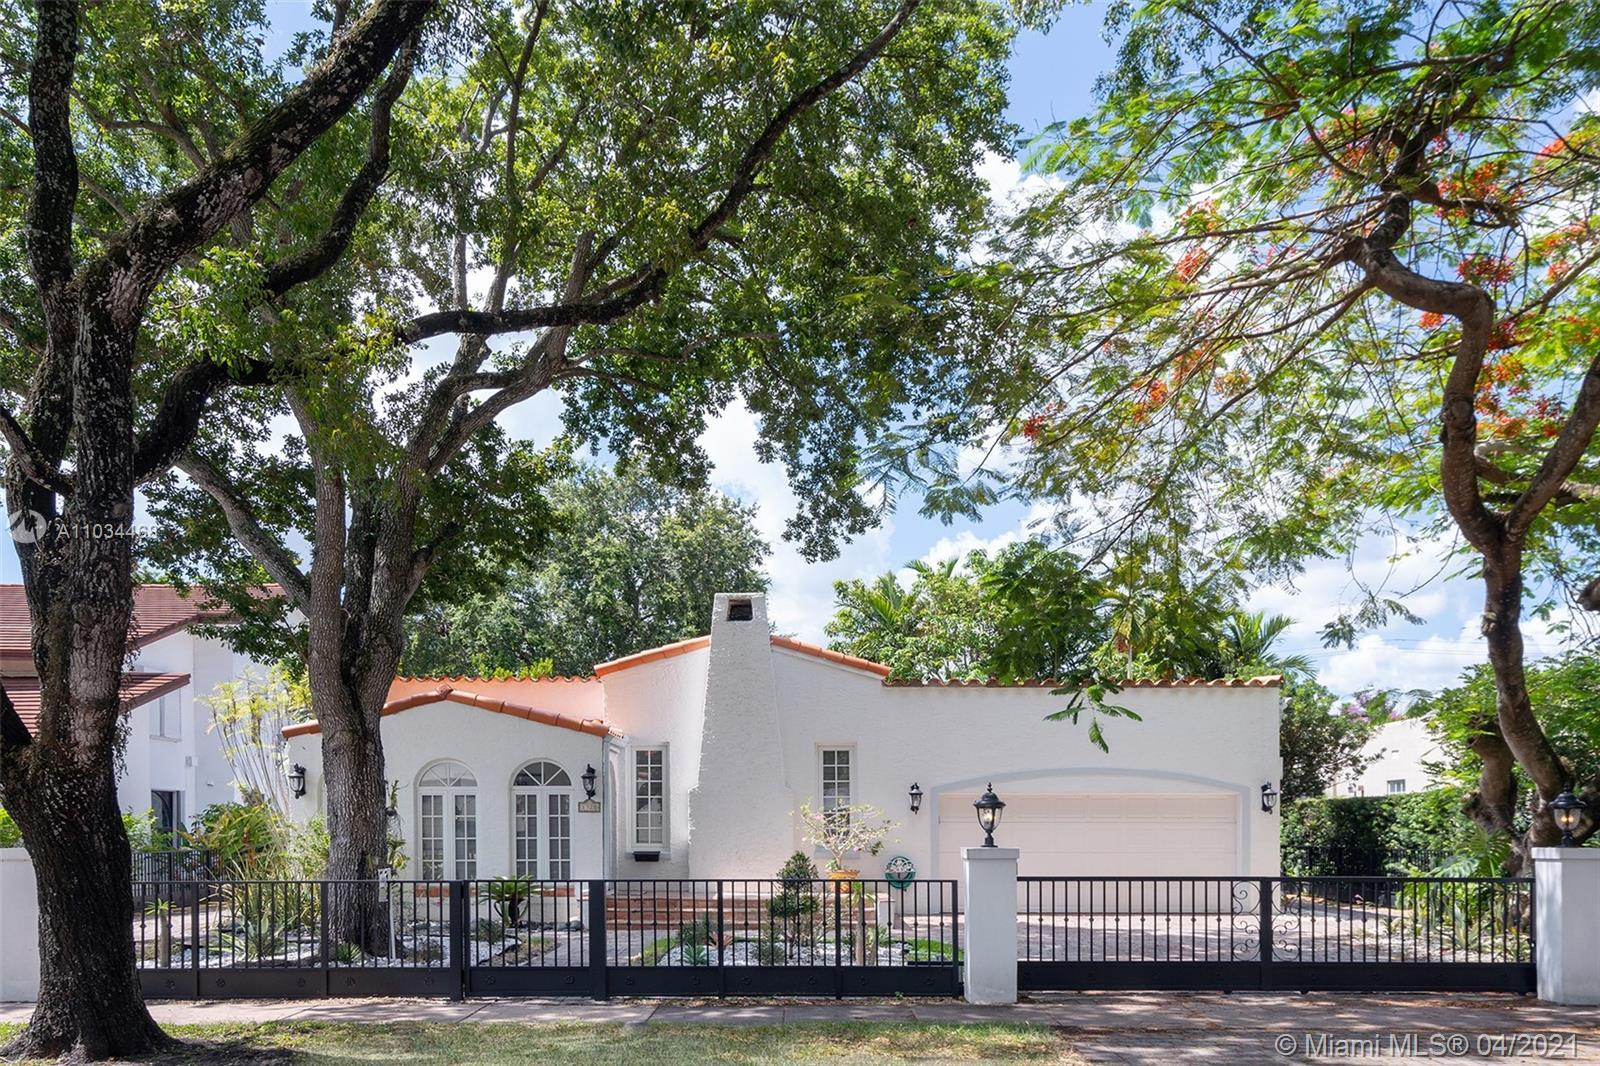 Gated 1920's Old Spanish villa situated on a historic tree-lined street in Coral Gables. Completely